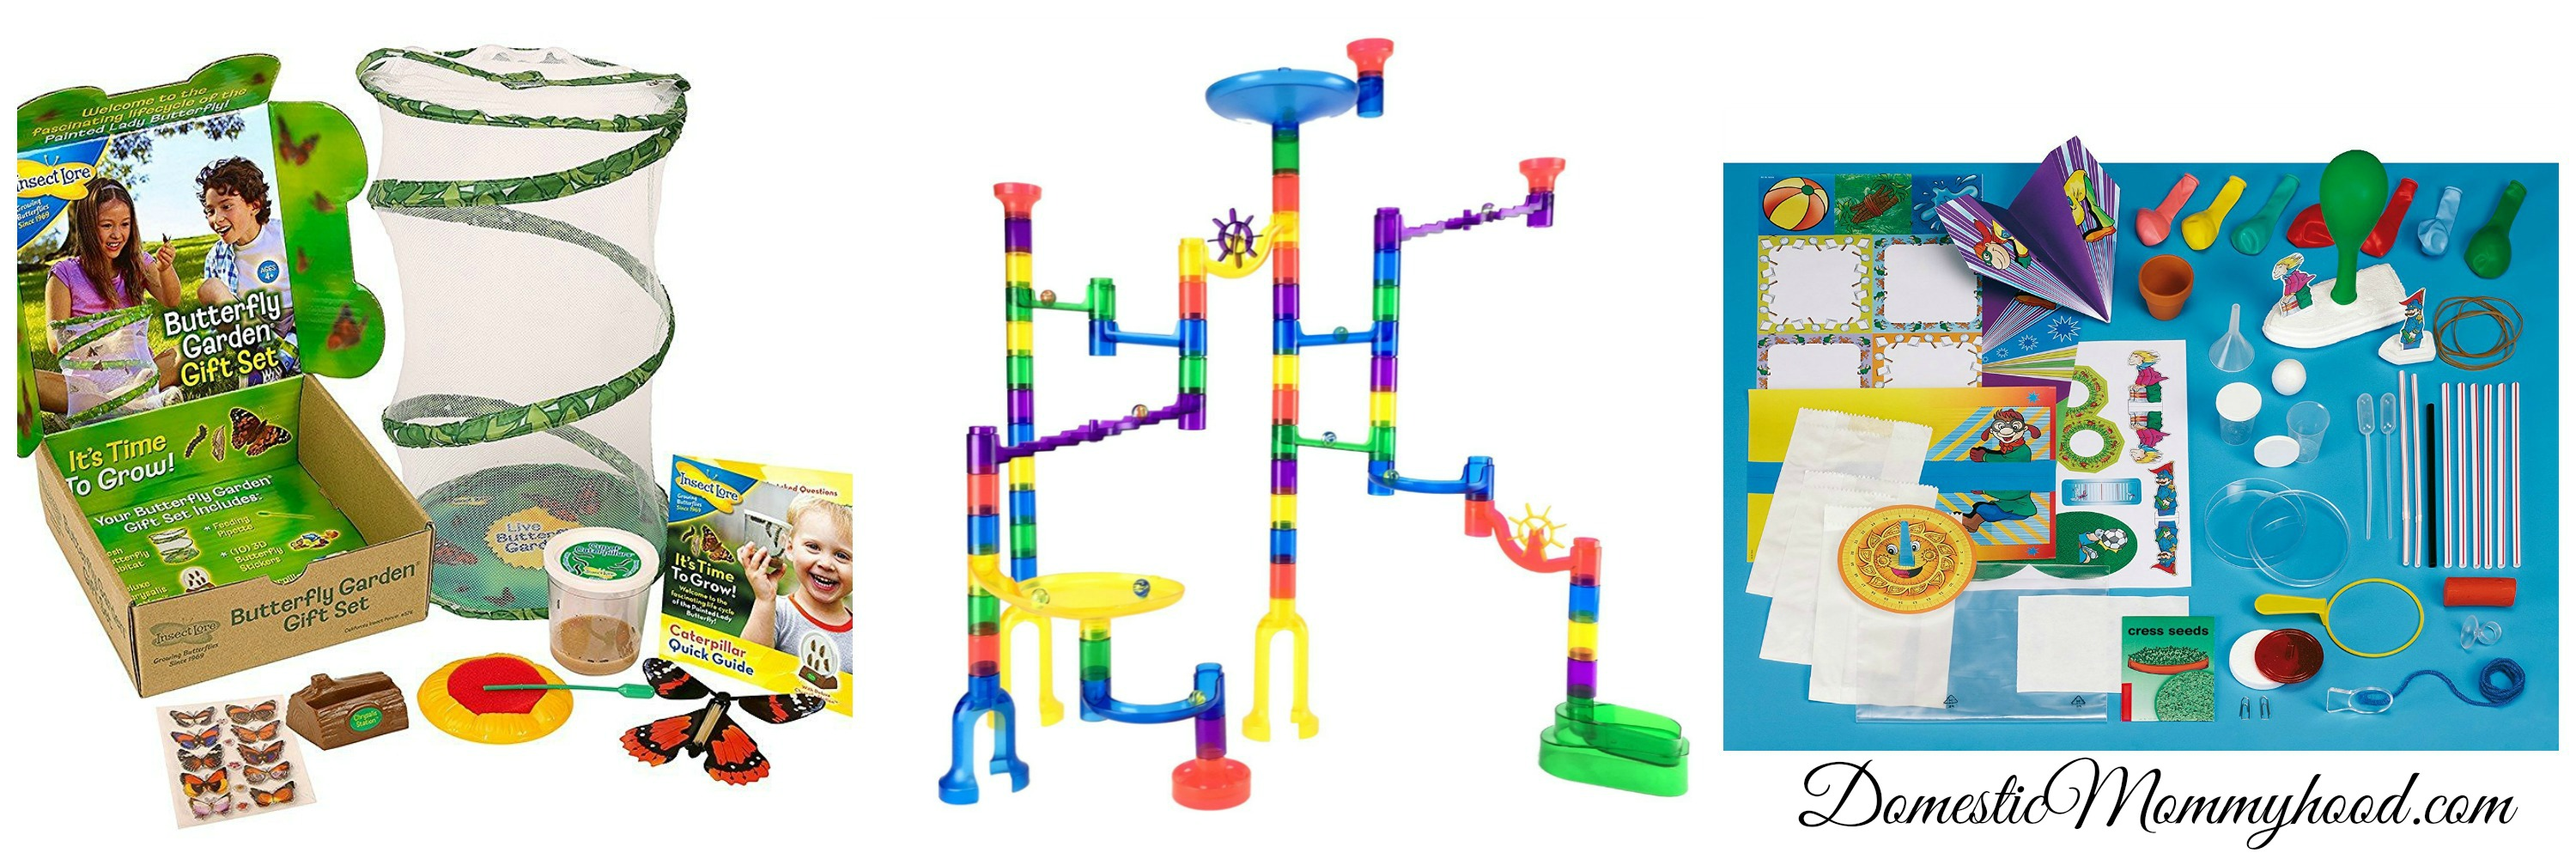 25 Hot Preschool STEM Toys For Learning While they Play Domestic